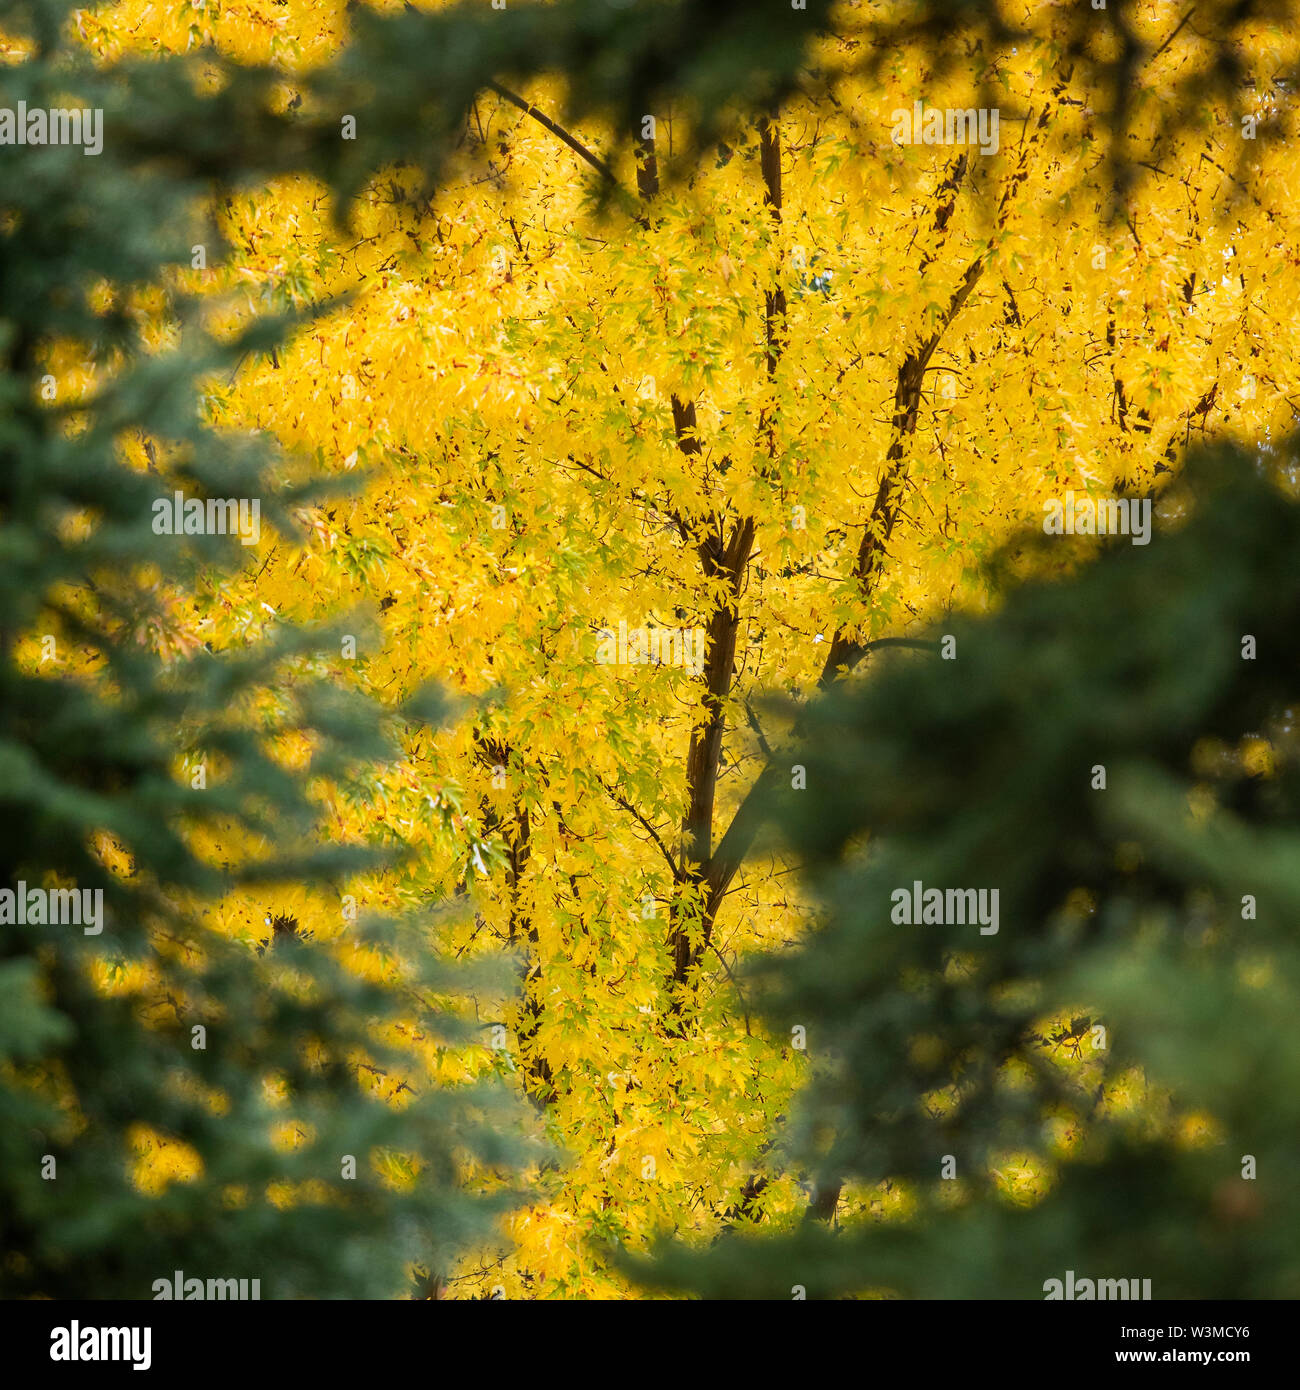 Tree with yellow leaves - Stock Image